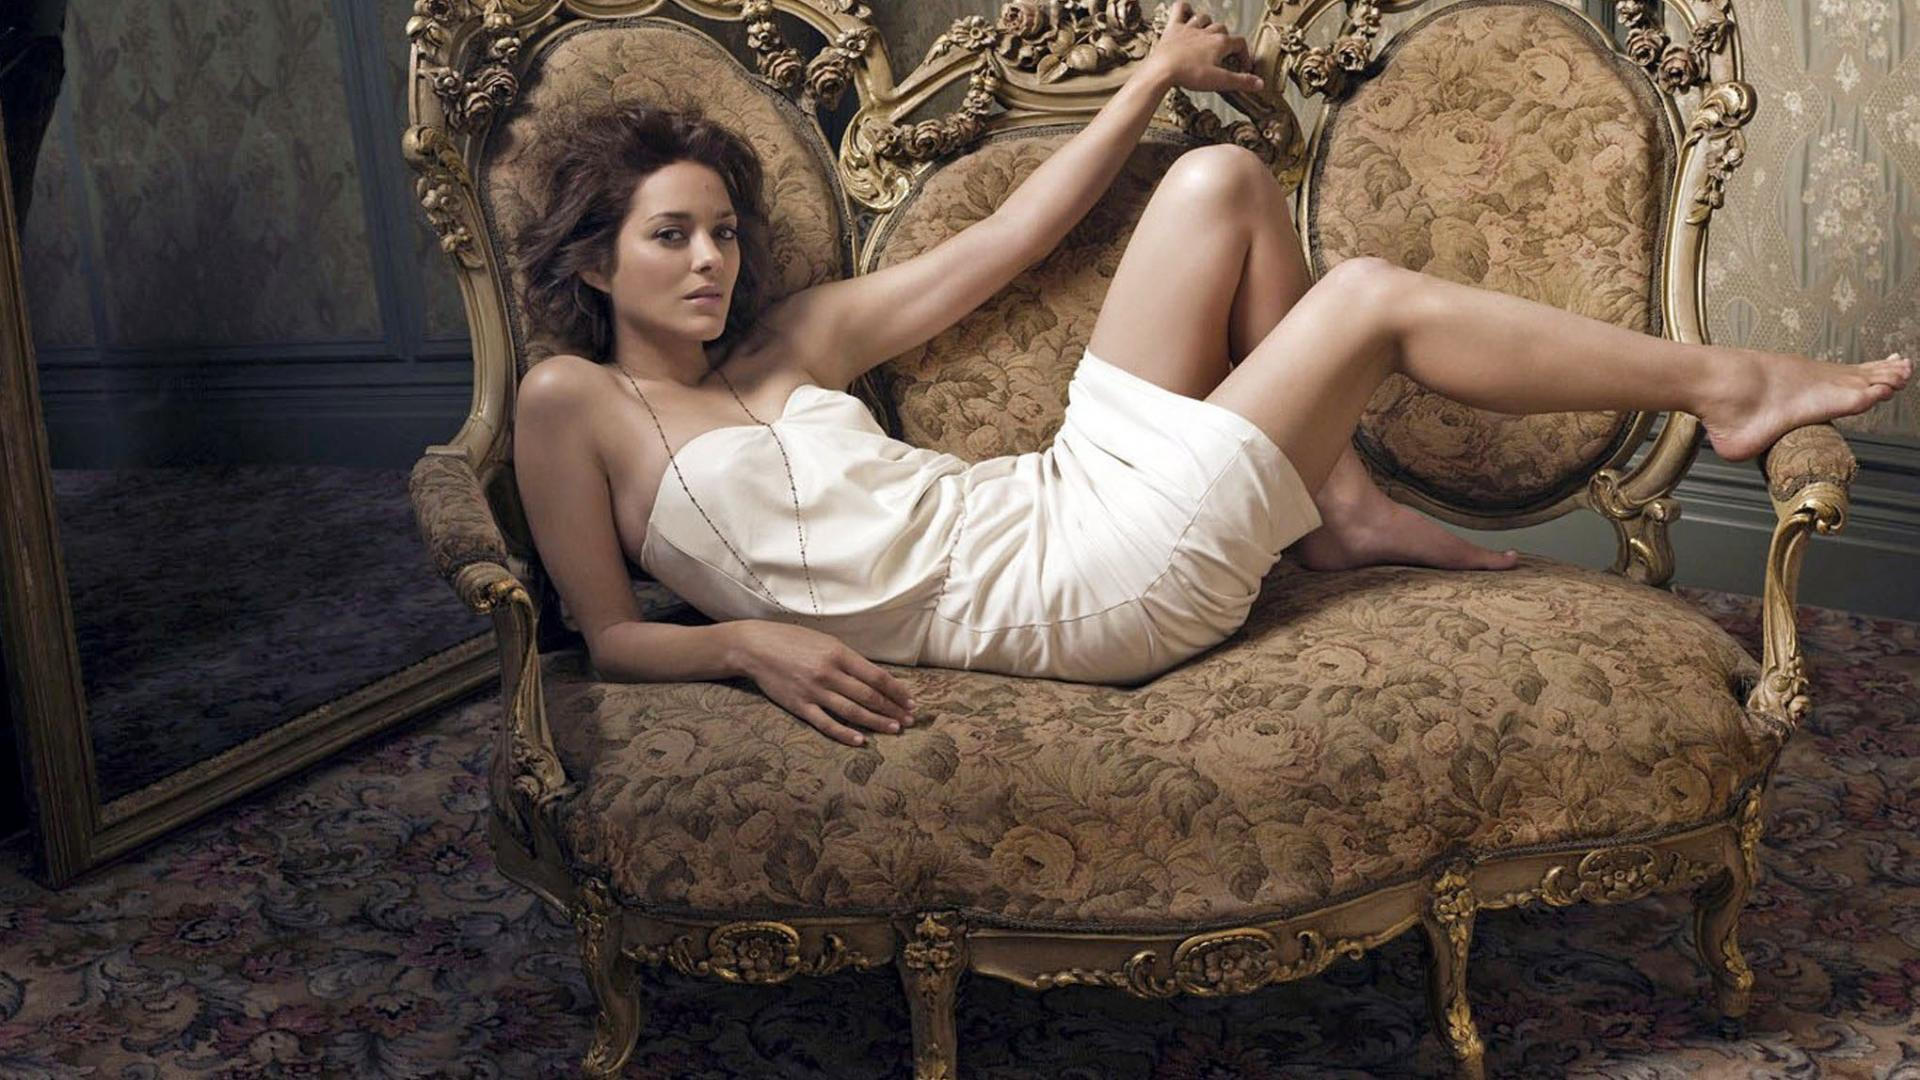 Erotica Marion Cotillard nudes (22 foto and video), Pussy, Paparazzi, Boobs, legs 2020